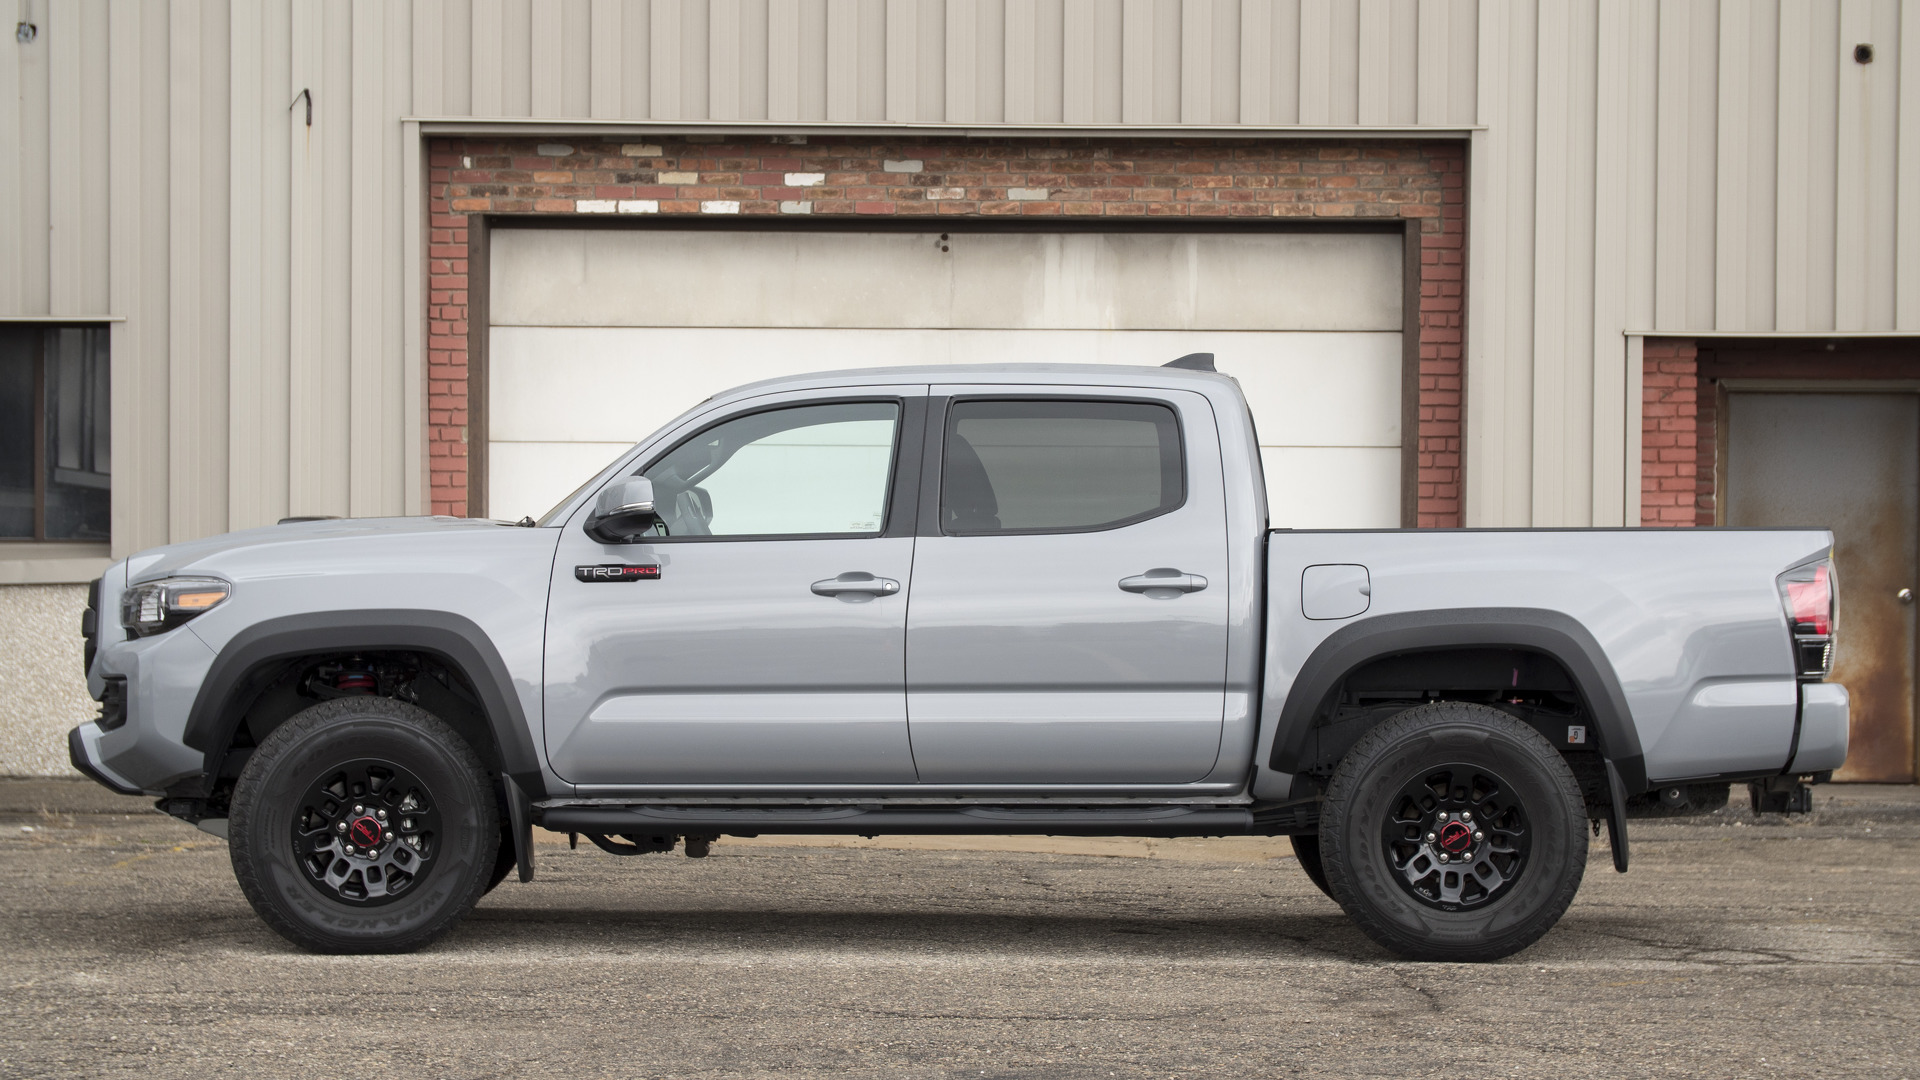 2017 Toyota Tacoma For Sale >> 2017 Toyota Tacoma Trd Pro Why Buy